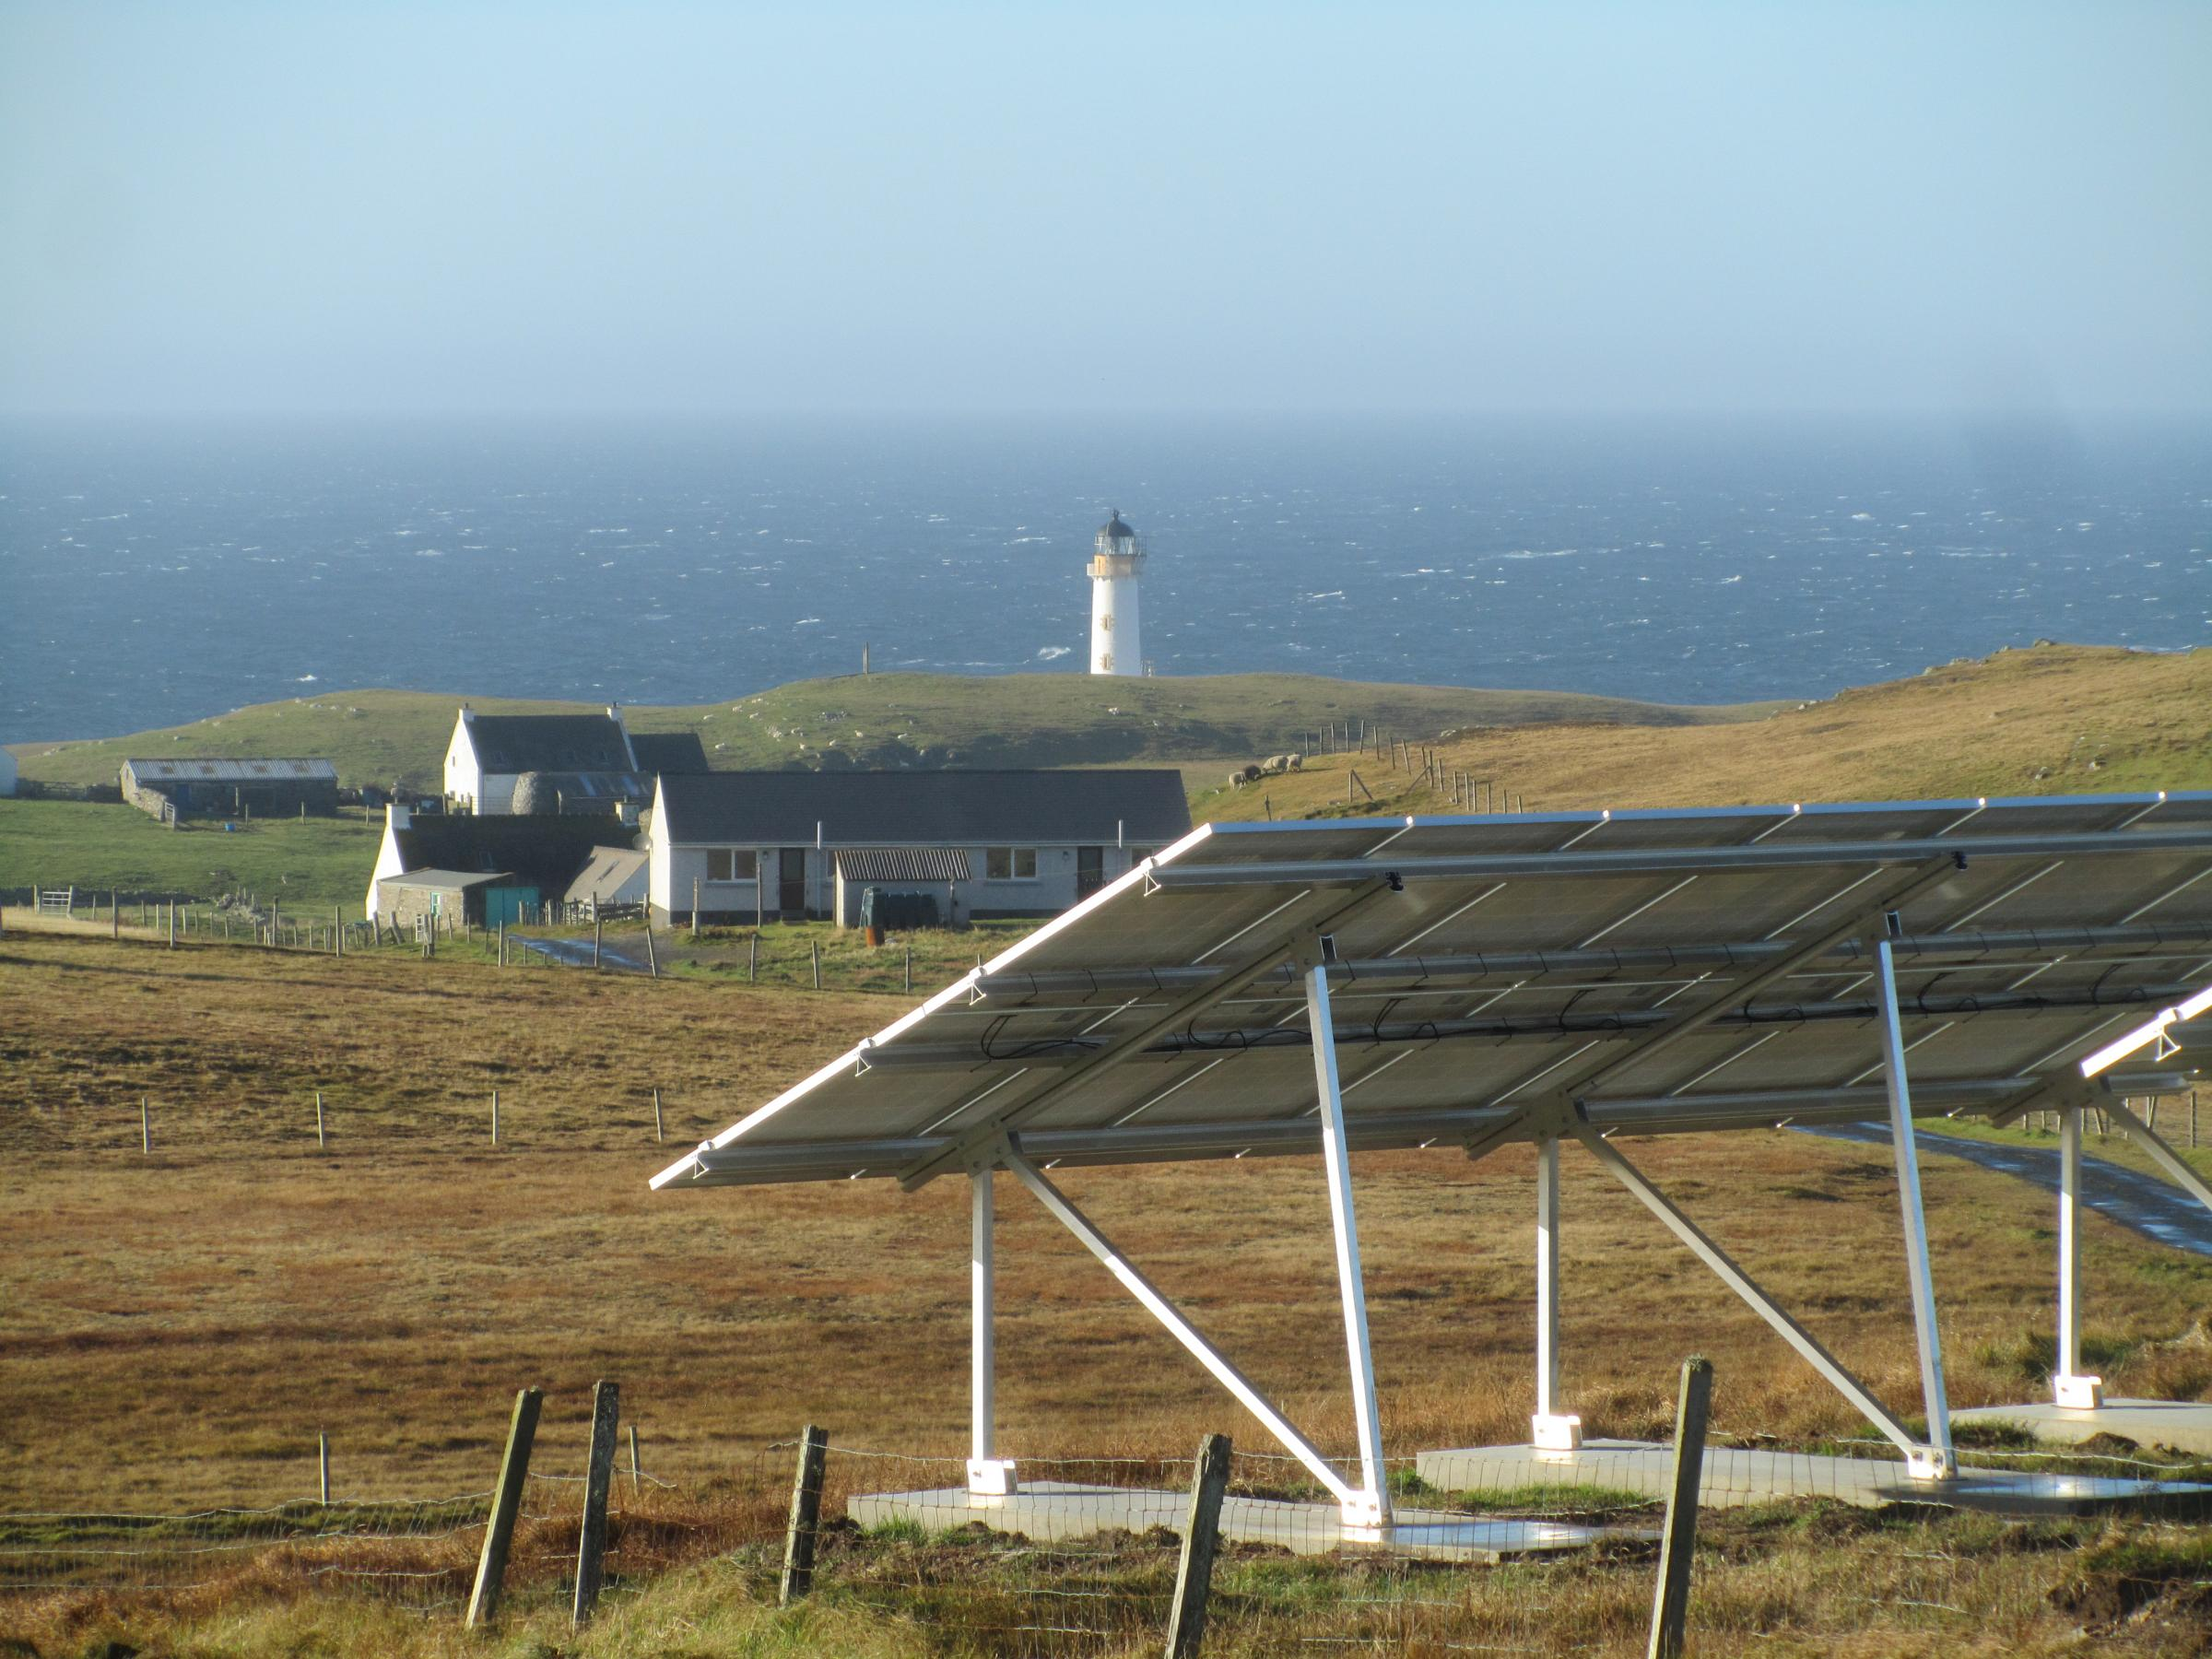 Fair Isle's renewable energy system offers potential for economic growth